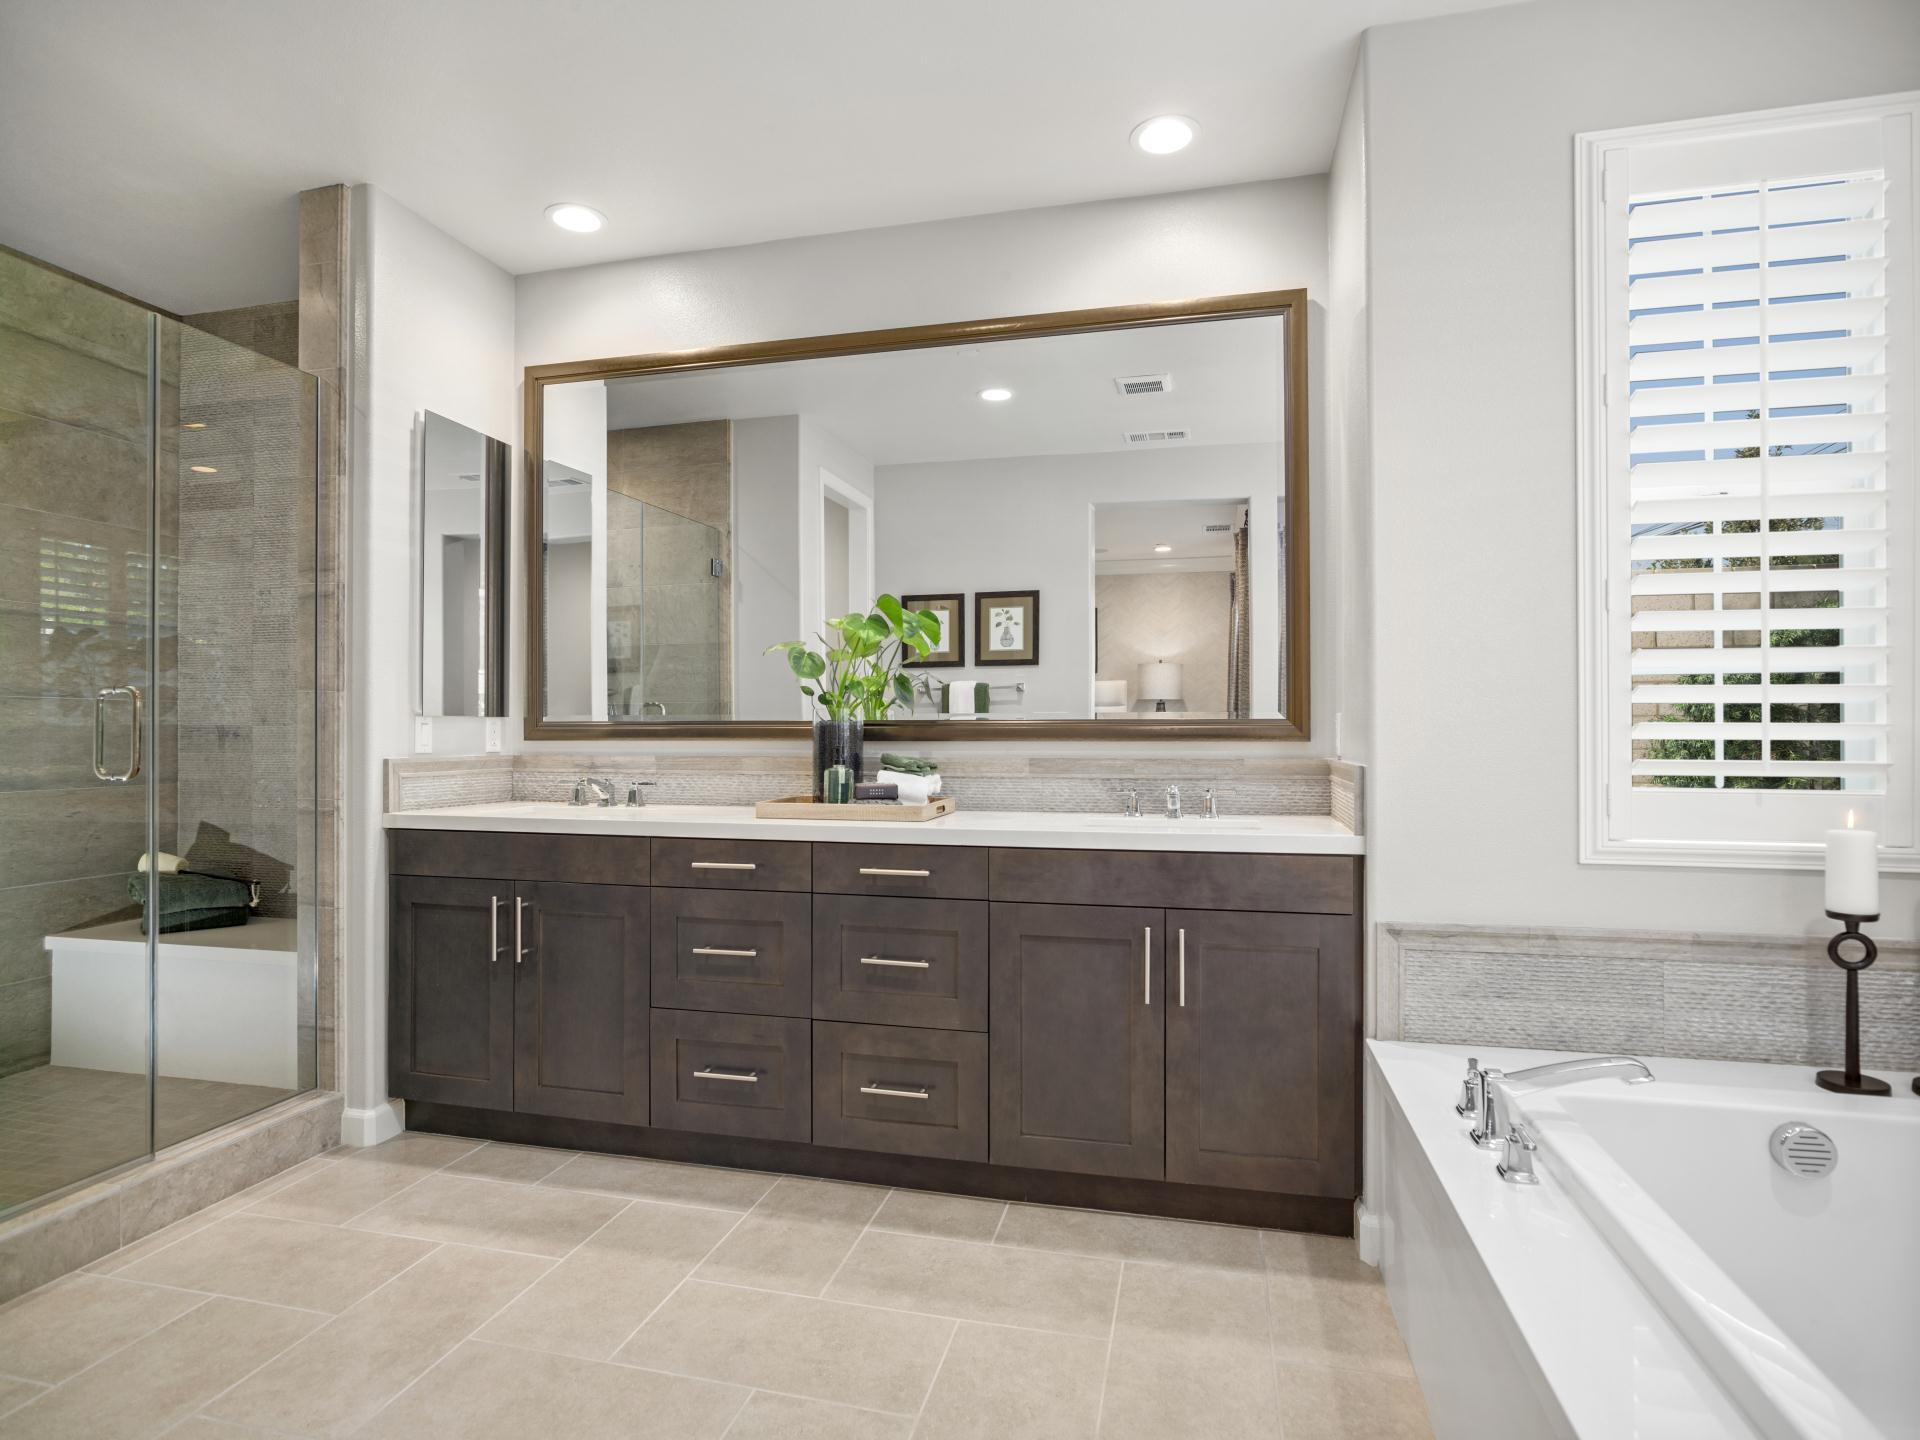 Bathroom featured in the Plan 2 By Brandywine Homes in Los Angeles, CA